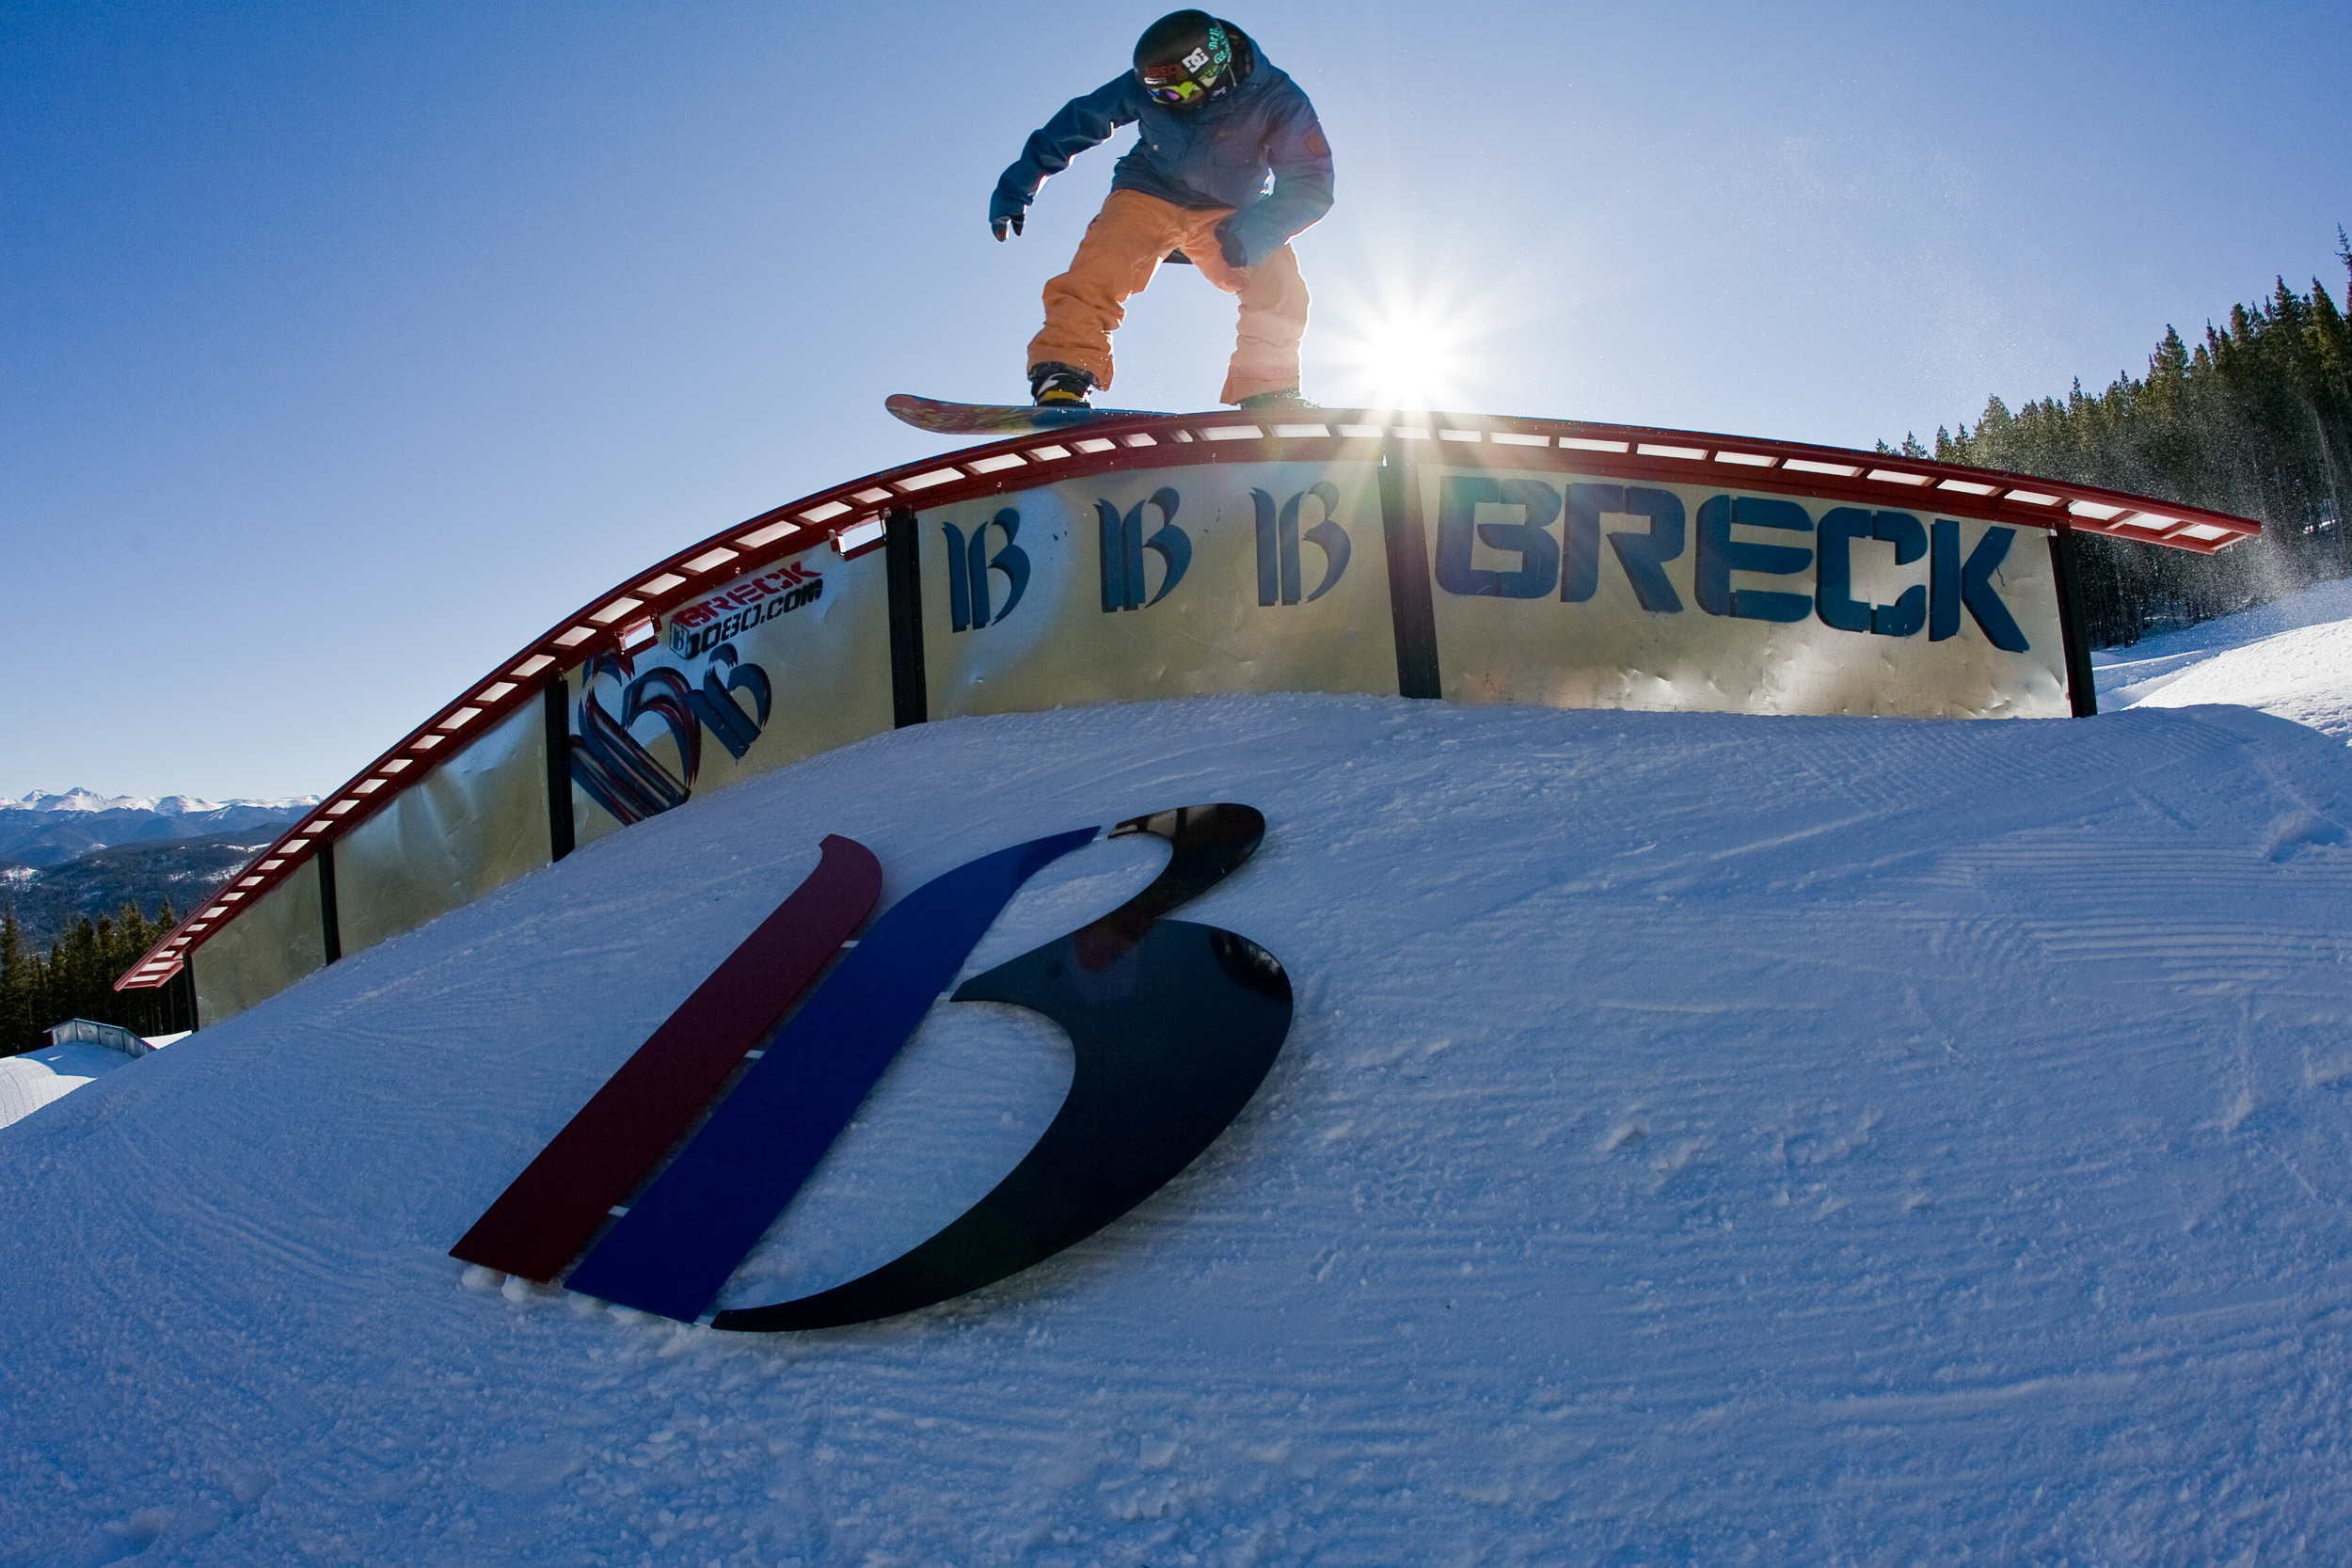 Breckenridge's Spring Fever Festival kicks off this weekend with the Park Jam. (Aaron Dodds)